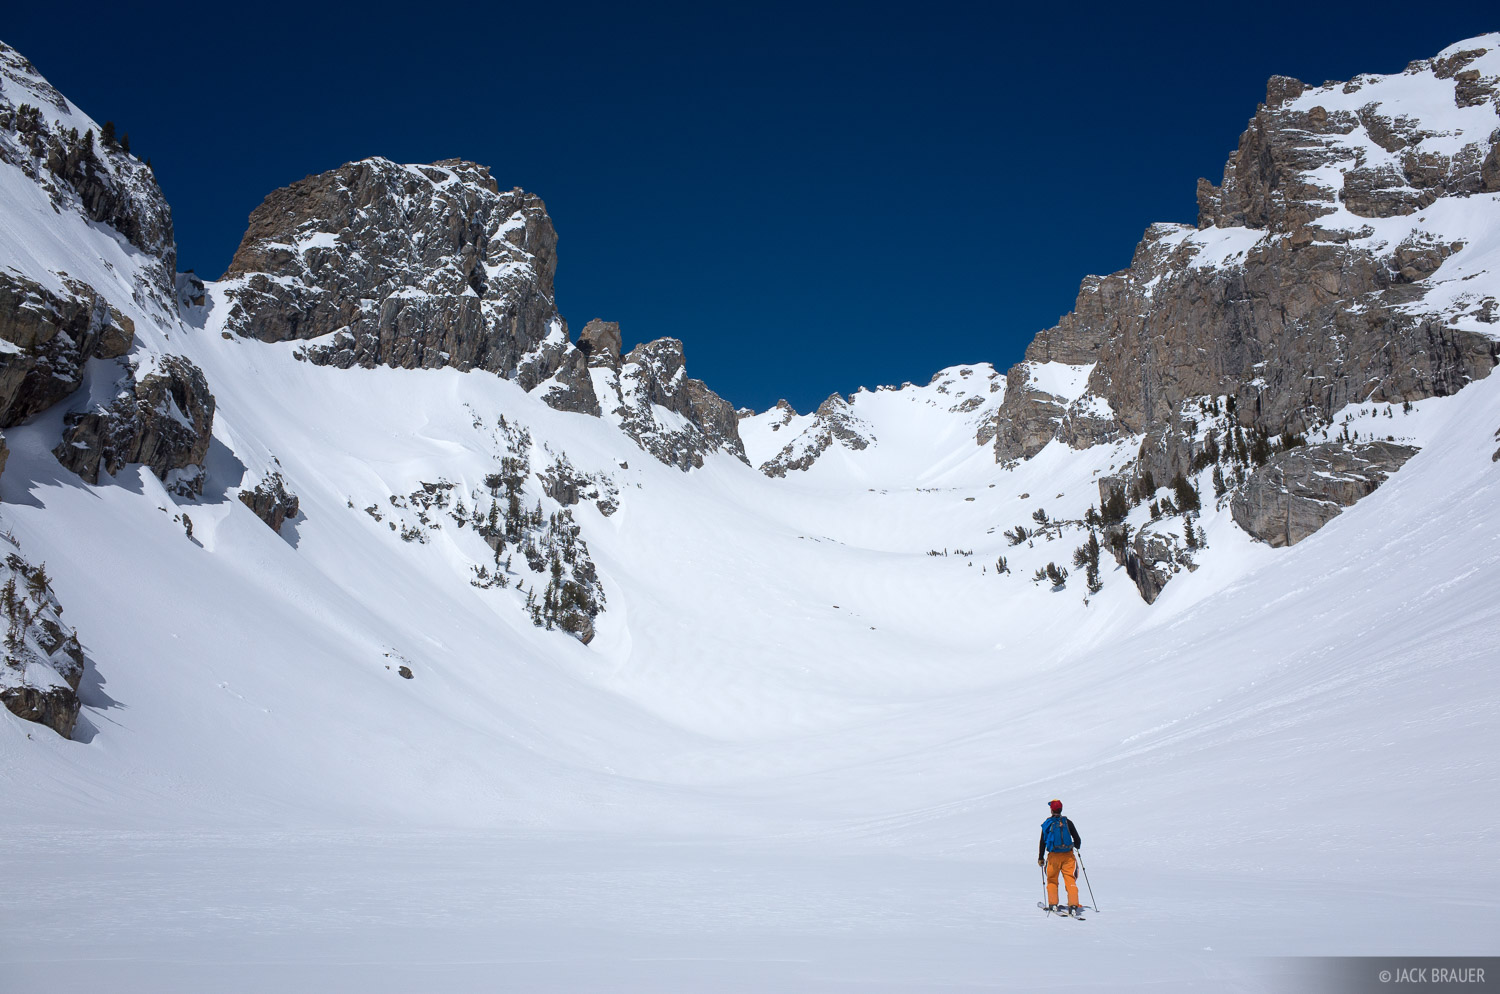 Tetons,The Jaw,Wyoming, skiing, photo